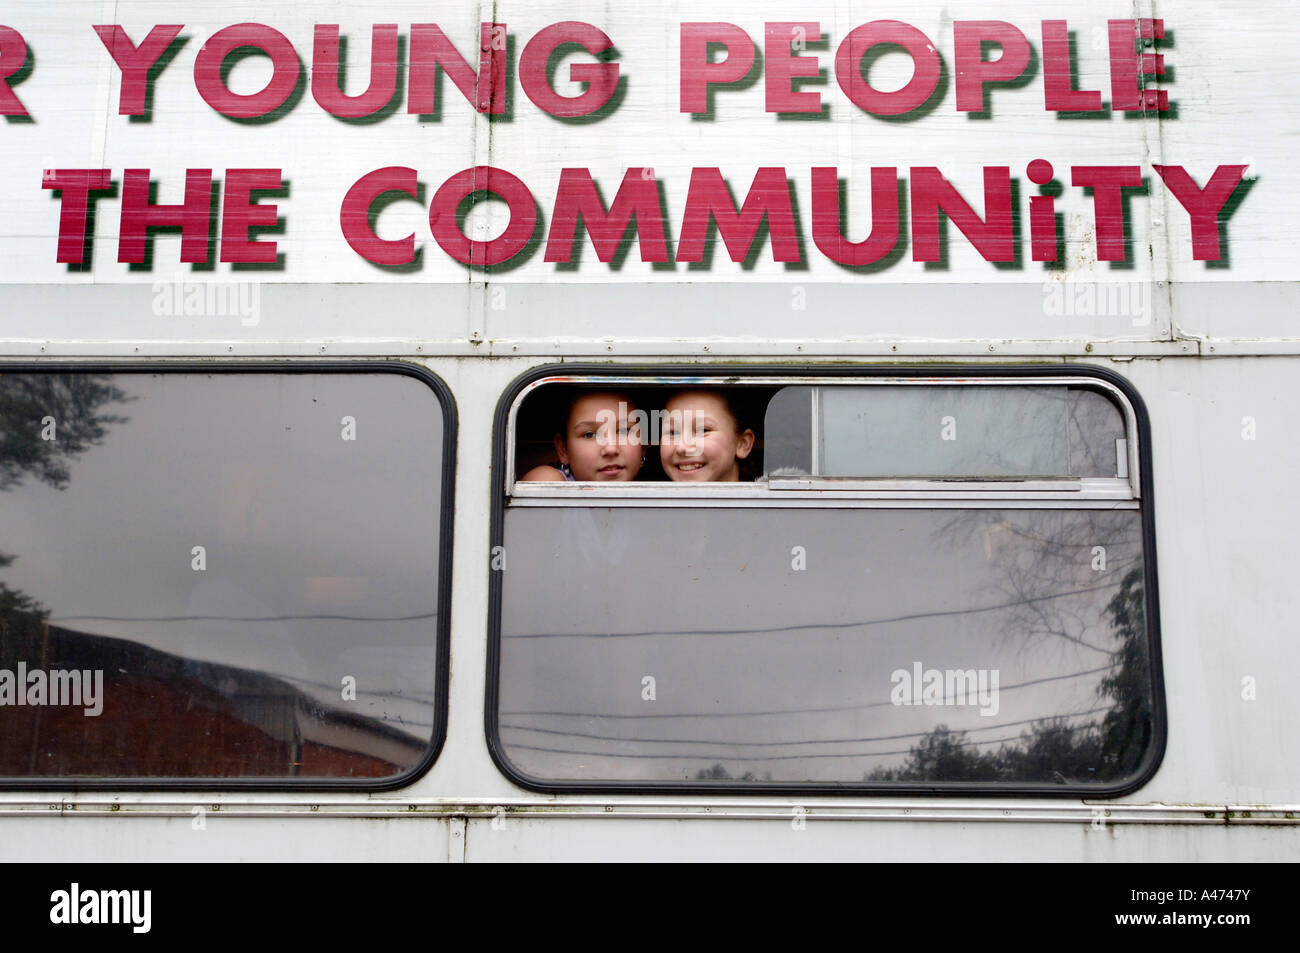 Two cheeky smiling traveller girls look out of the window of a community bus Stock Photo